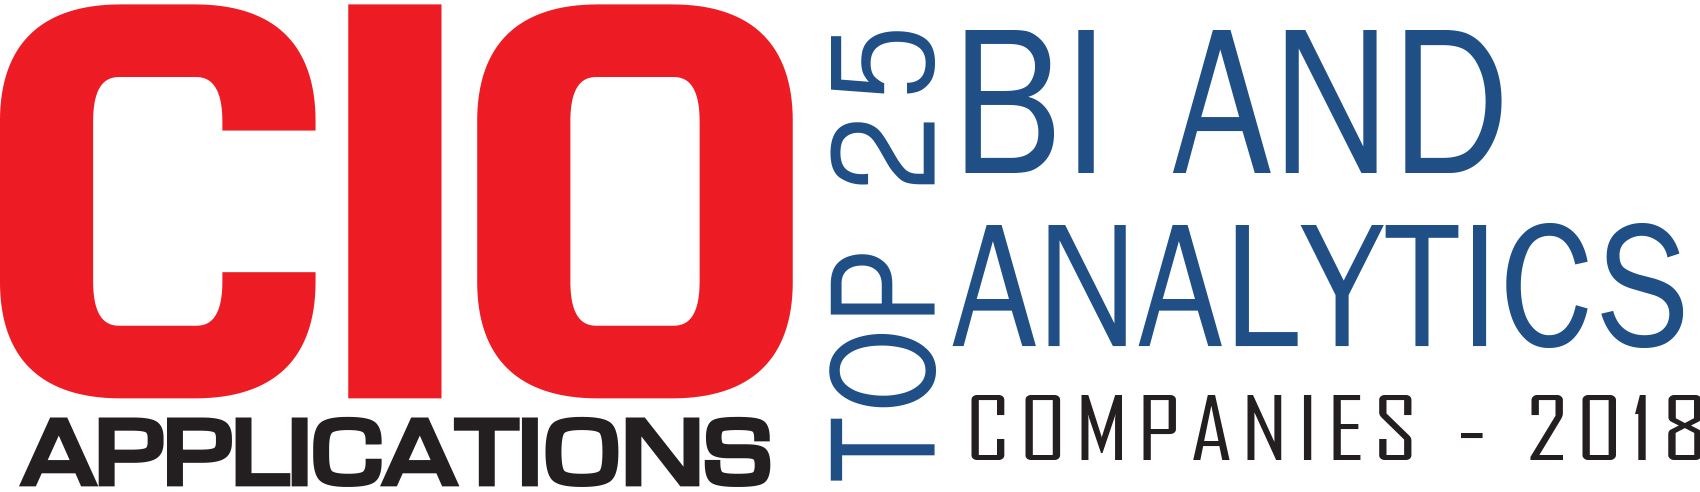 Top 25 BI and Analytics Companies  - 2018